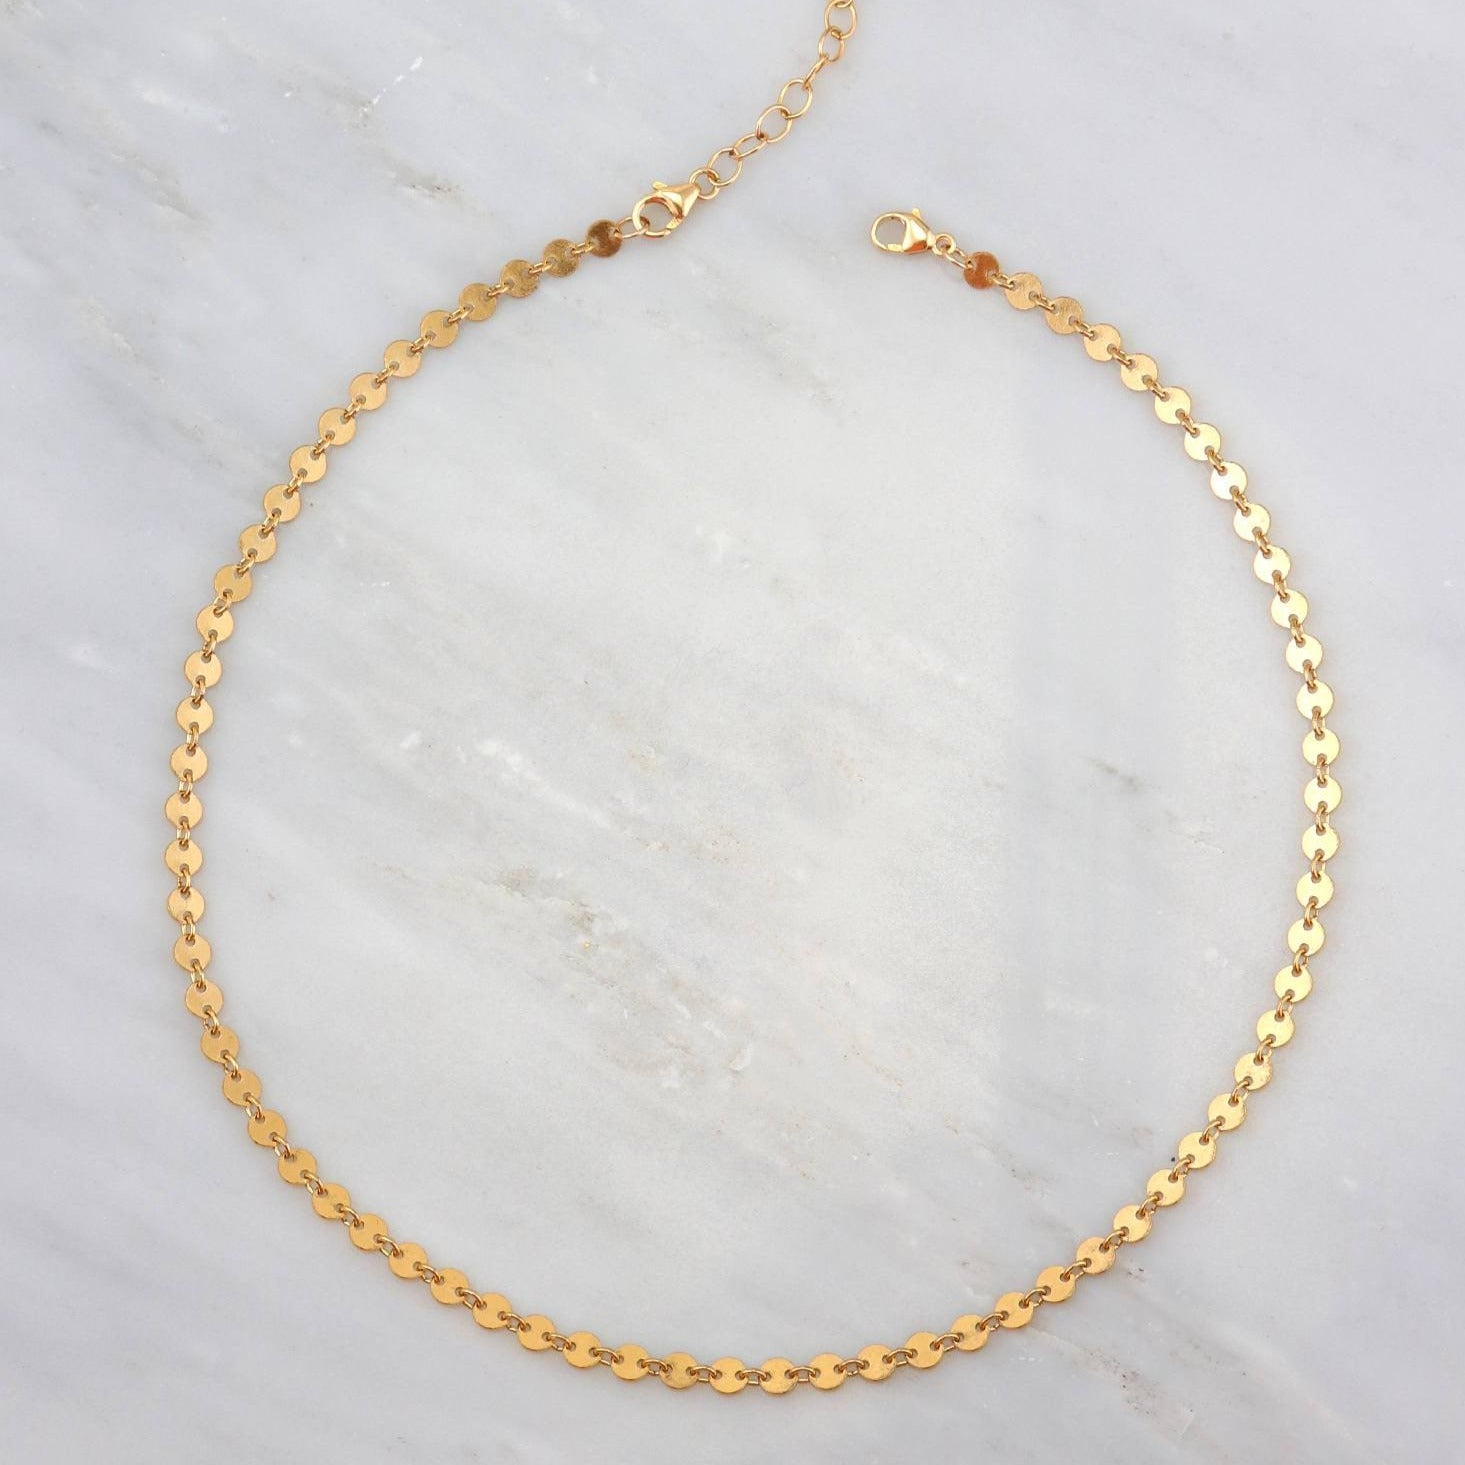 Choker Necklace, Coin Disc Choker Necklace, Gold Choker, Chain Choker, Bohemian Choker, Coin Tattoo Choker, Girlfriend Gift, Gift for her